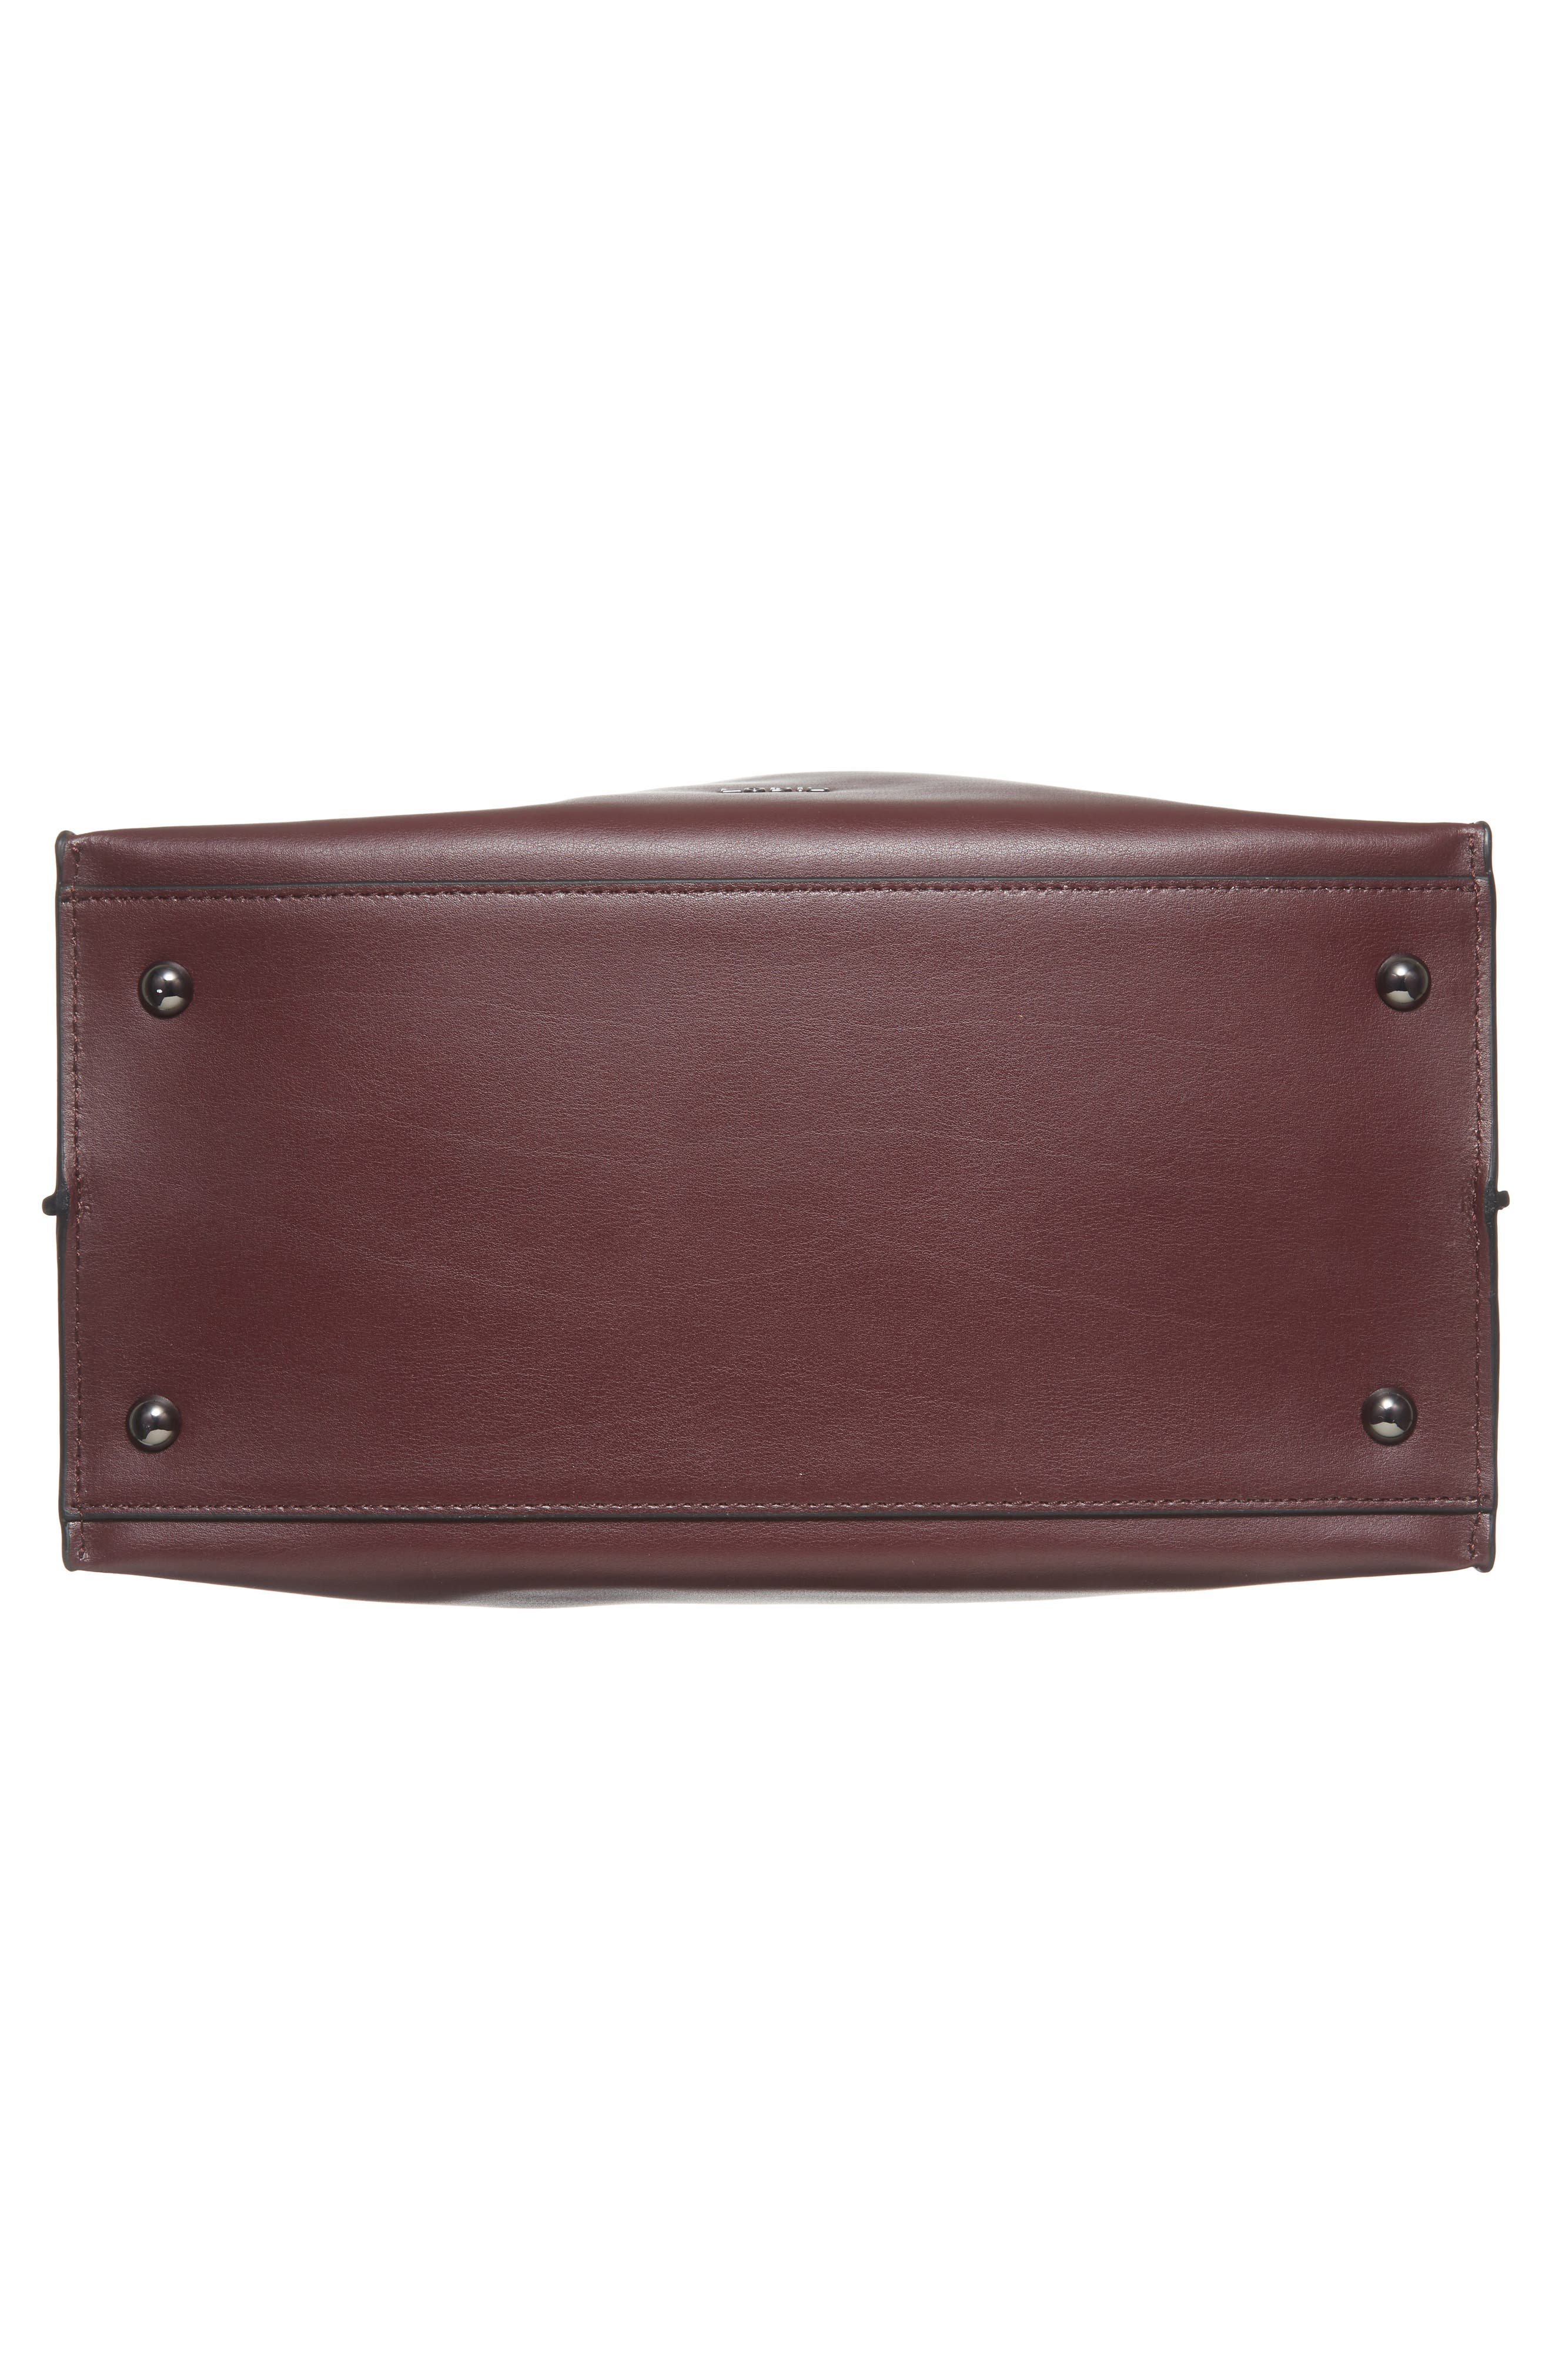 LODIS Silicon Valley Collection Under Lock & Key - Anita RFID East/West Leather Satchel,                             Alternate thumbnail 18, color,